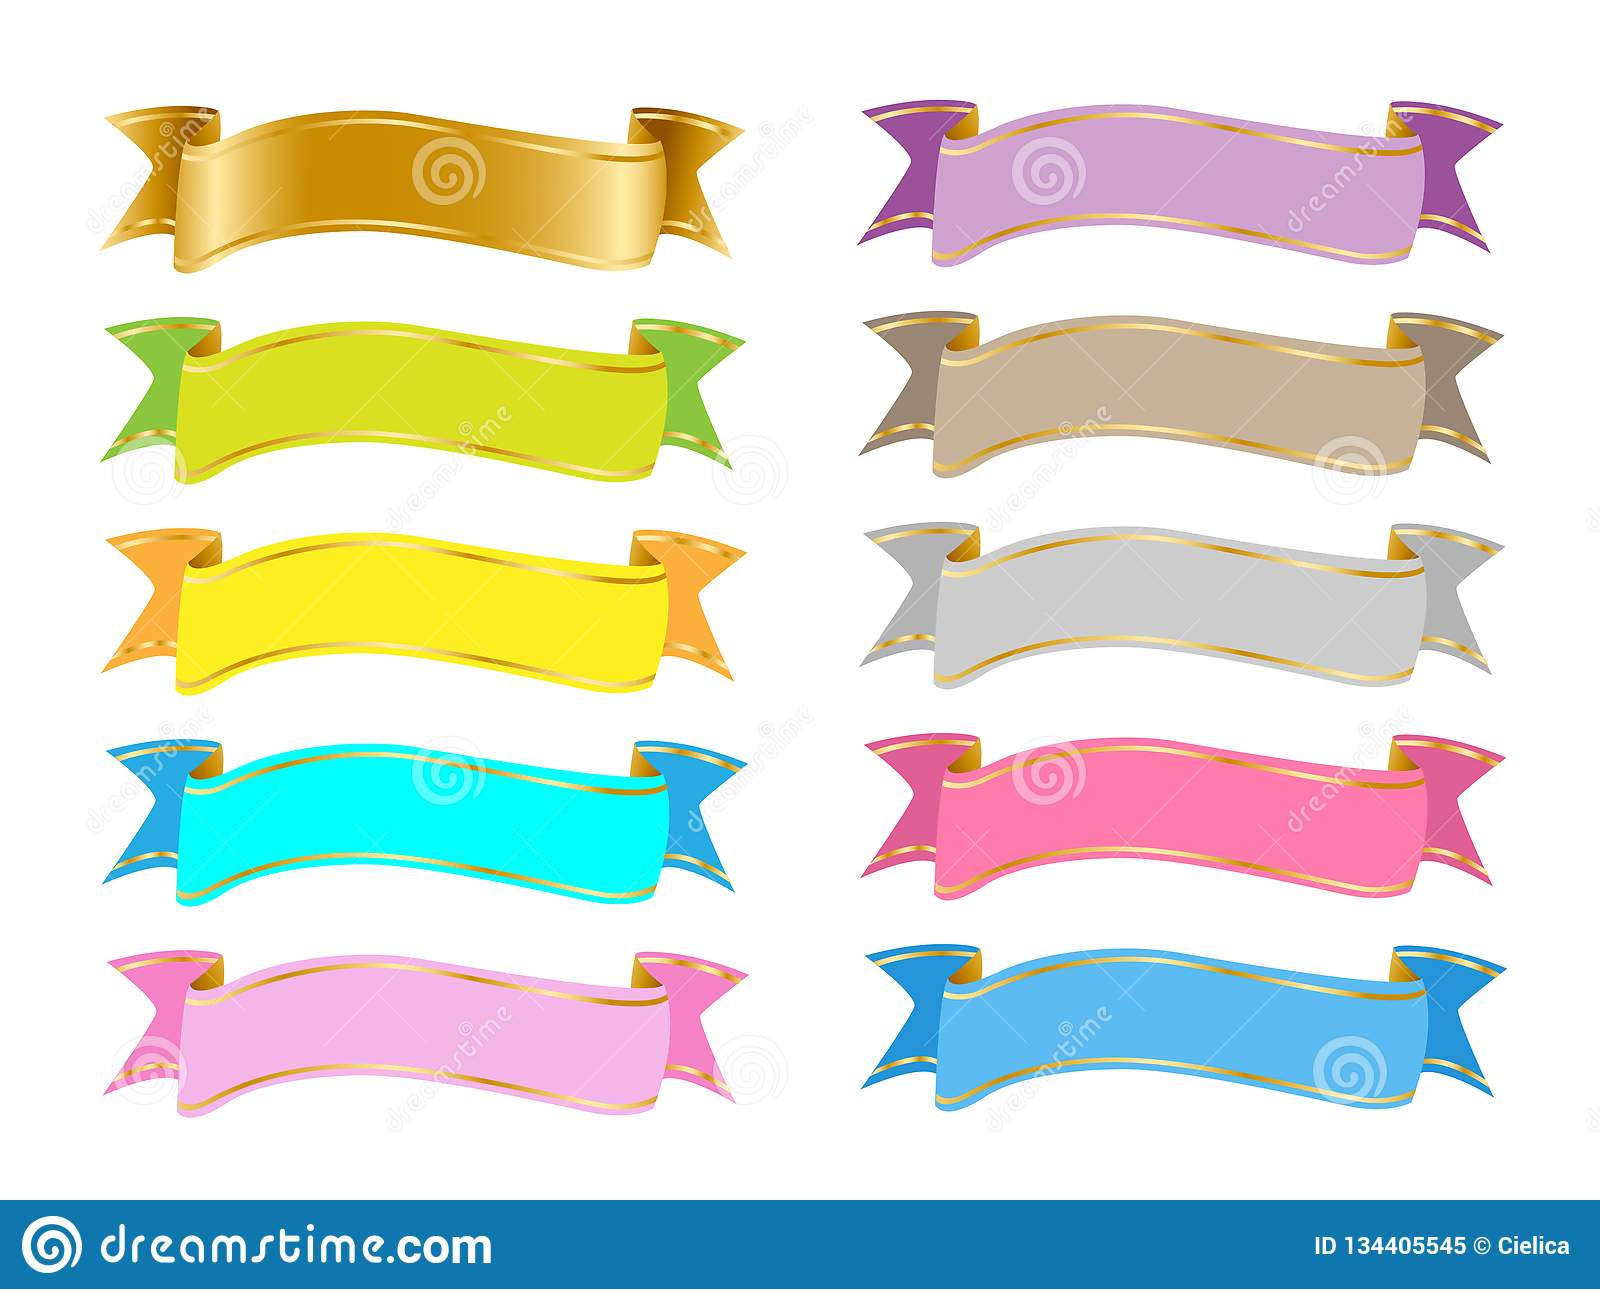 hight resolution of colorful banners ribbons clip art vector clipart eps svg party elements rainbow colorful banner images